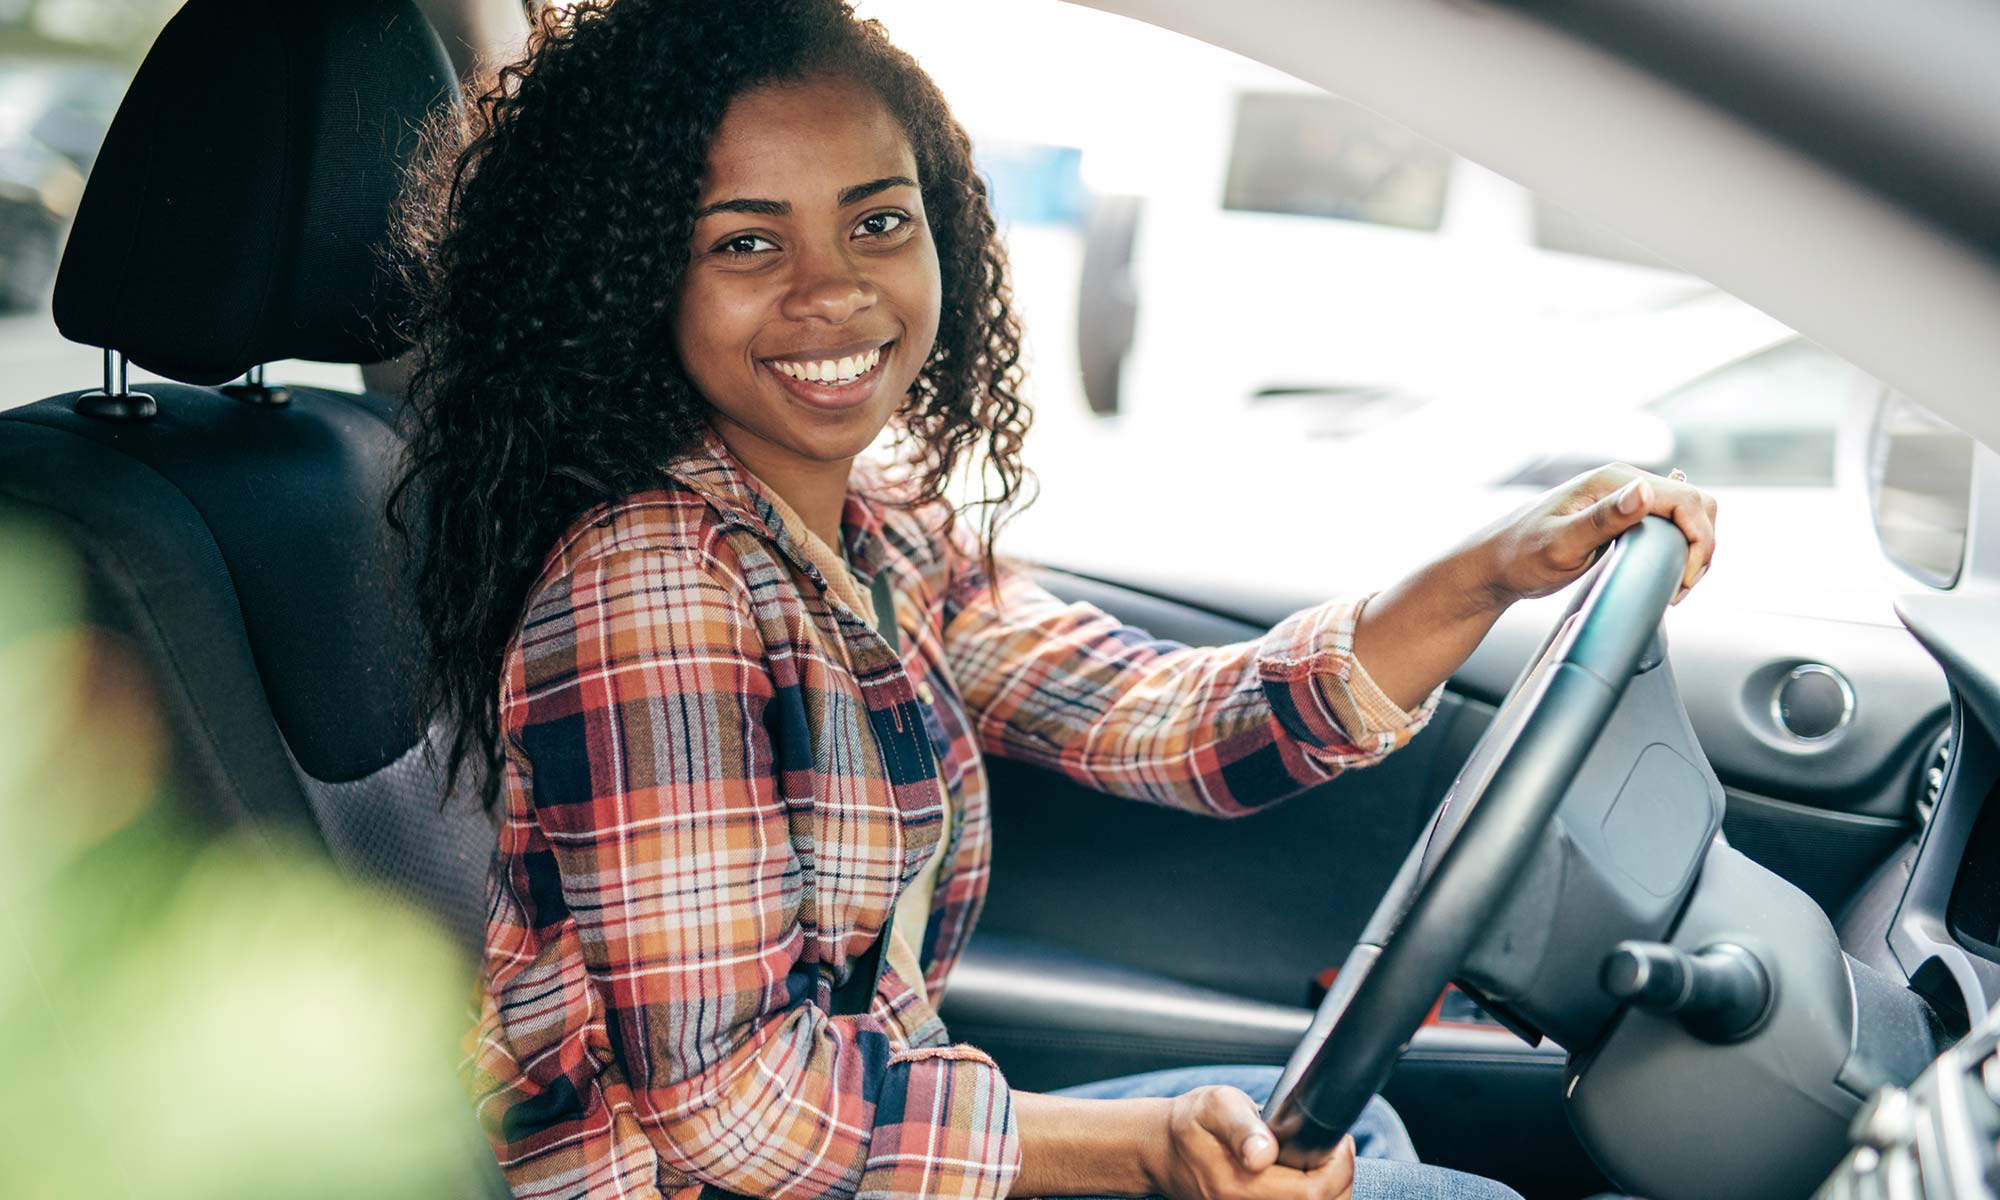 A young woman smiles while in the driver seat of her car.